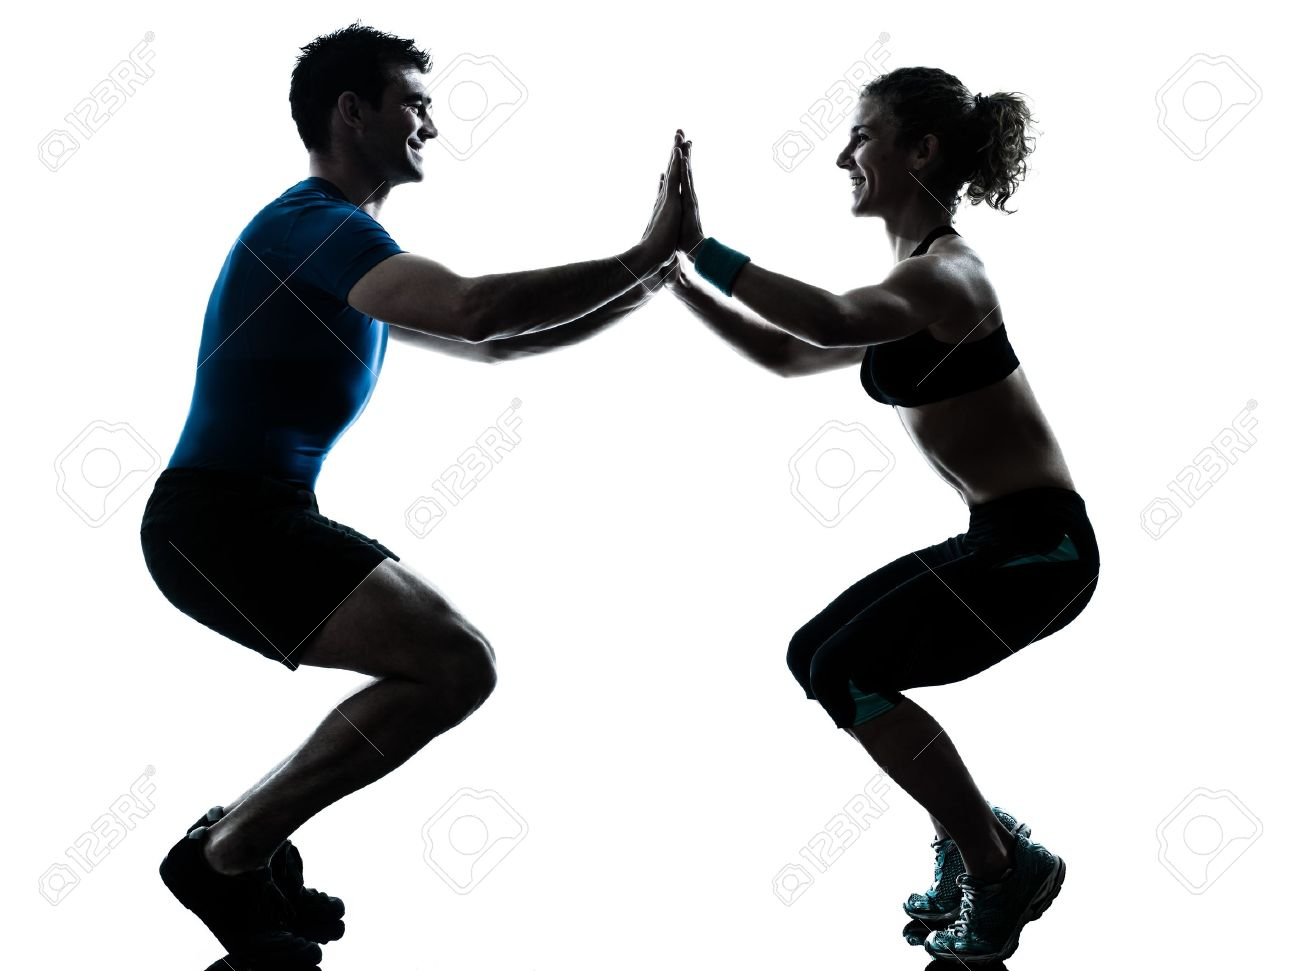 one caucasian couple man woman personal trainer coach exercising squatts silhouette studio isolated on white background Stock Photo - 14677452